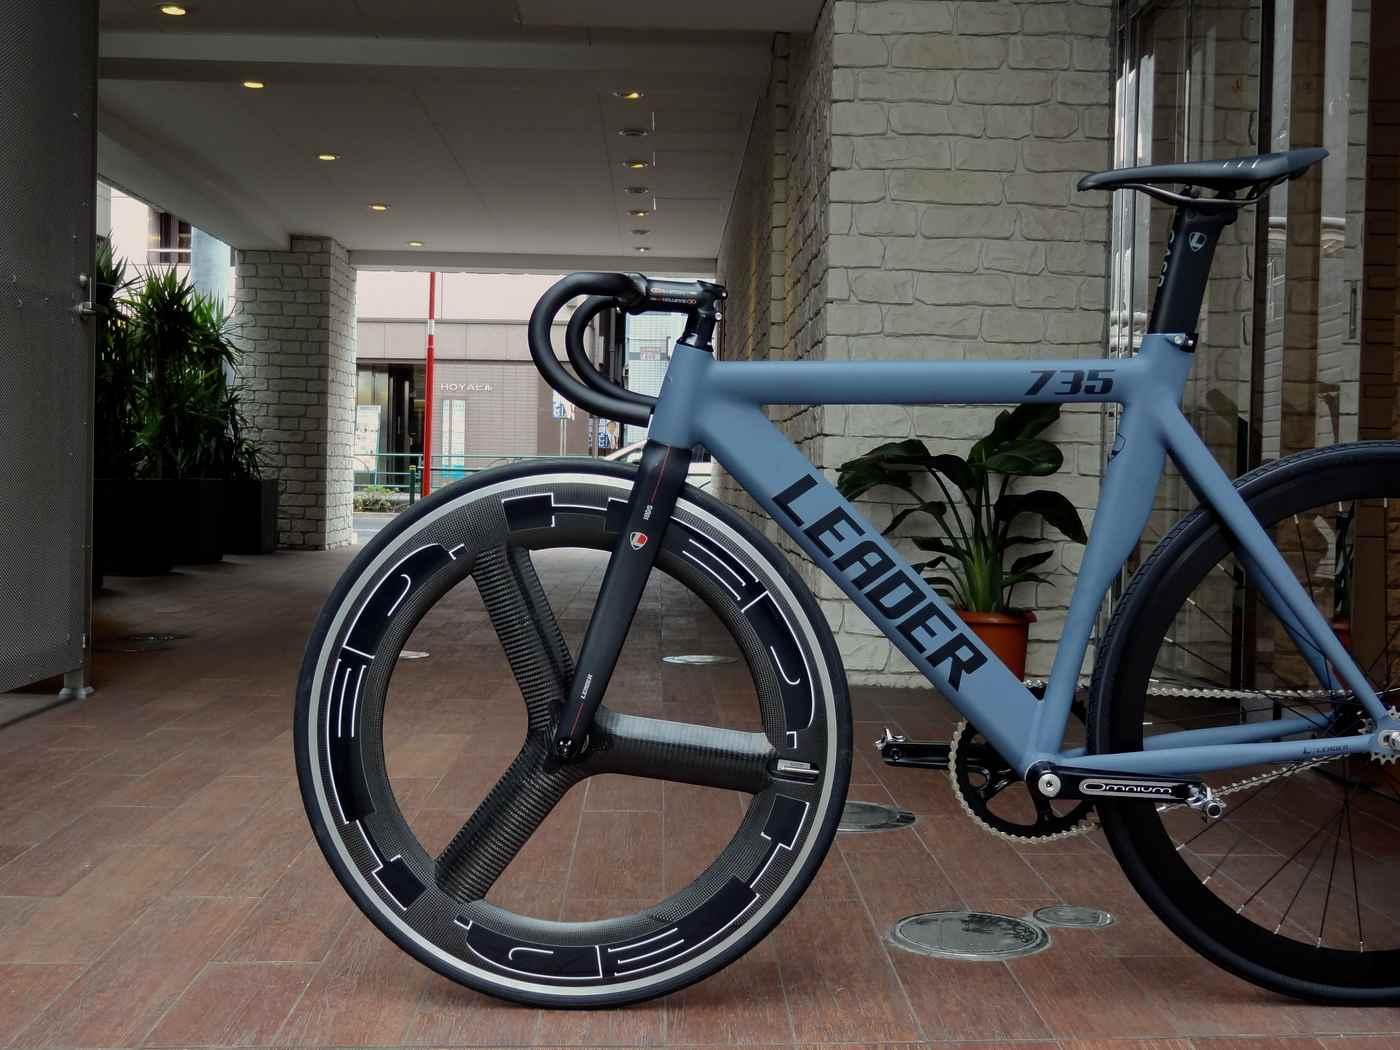 LEADERBIKES, 735TR, LIMITED, MATTENAVY, USNAVY, FIXEDGEAR, BROTURES, ブローチャーズ, リーダーバイク, ピスト, リミテッド, 限定, カッコいい自転車